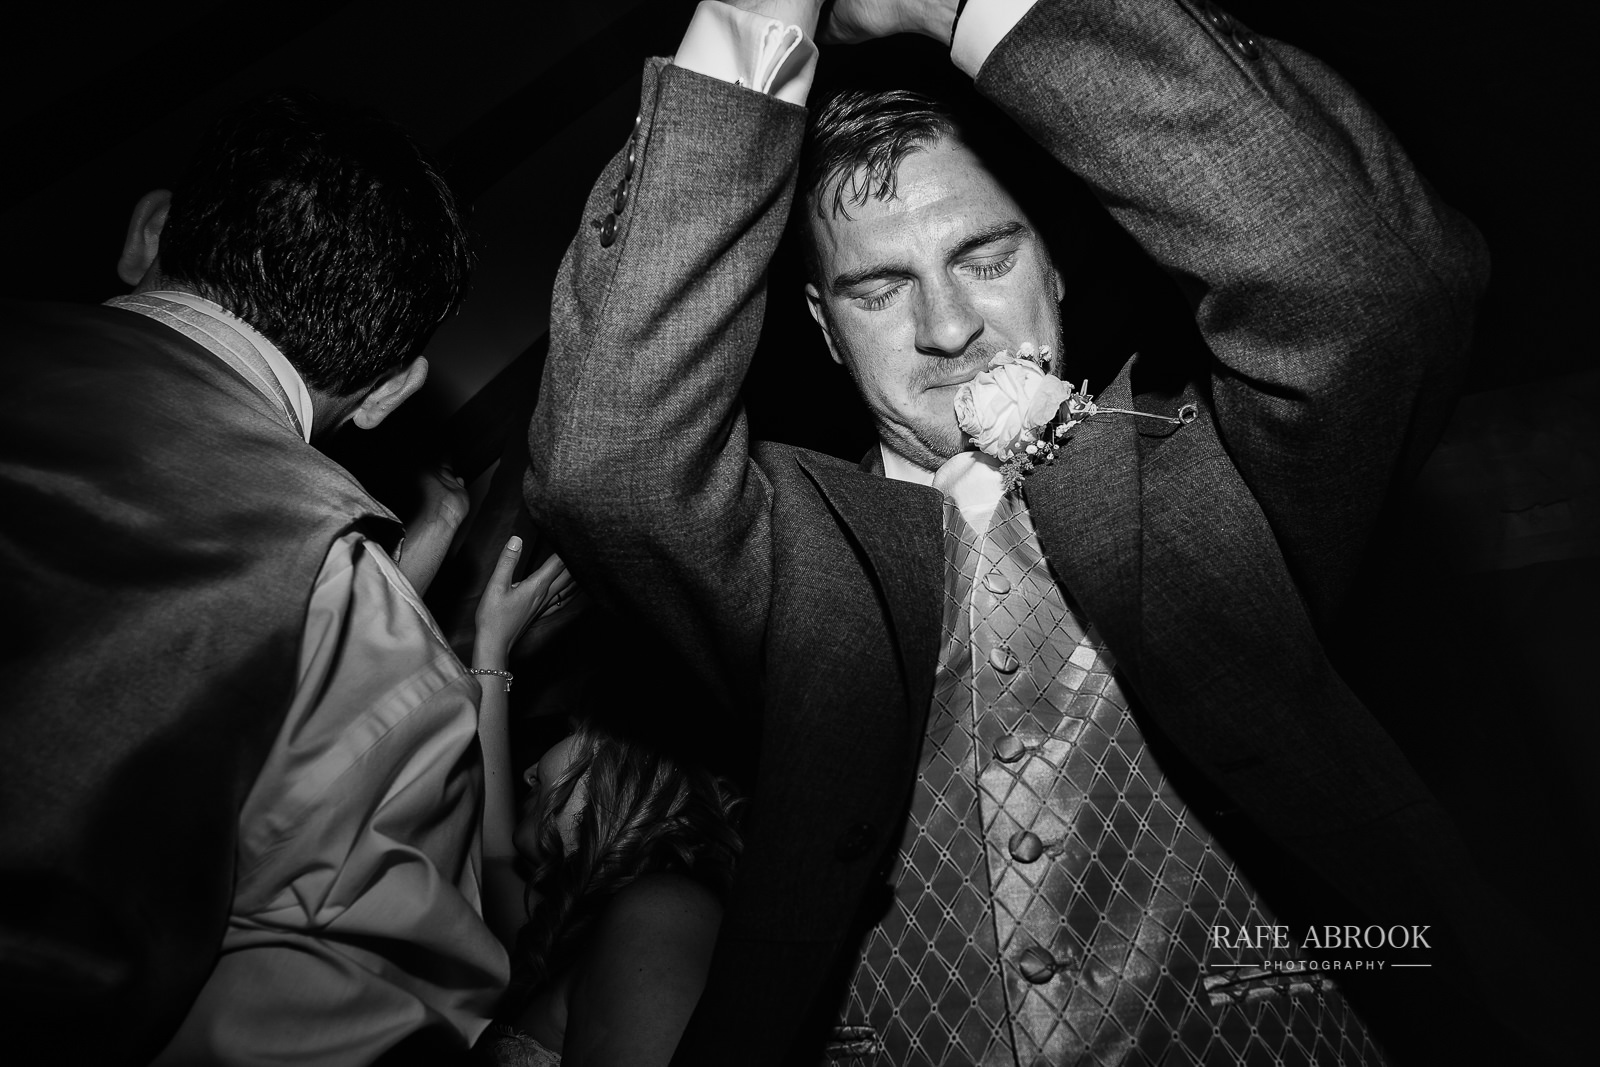 south farm wedding royston hertfordshire wedding photographer rafe abrook photography-2047.jpg